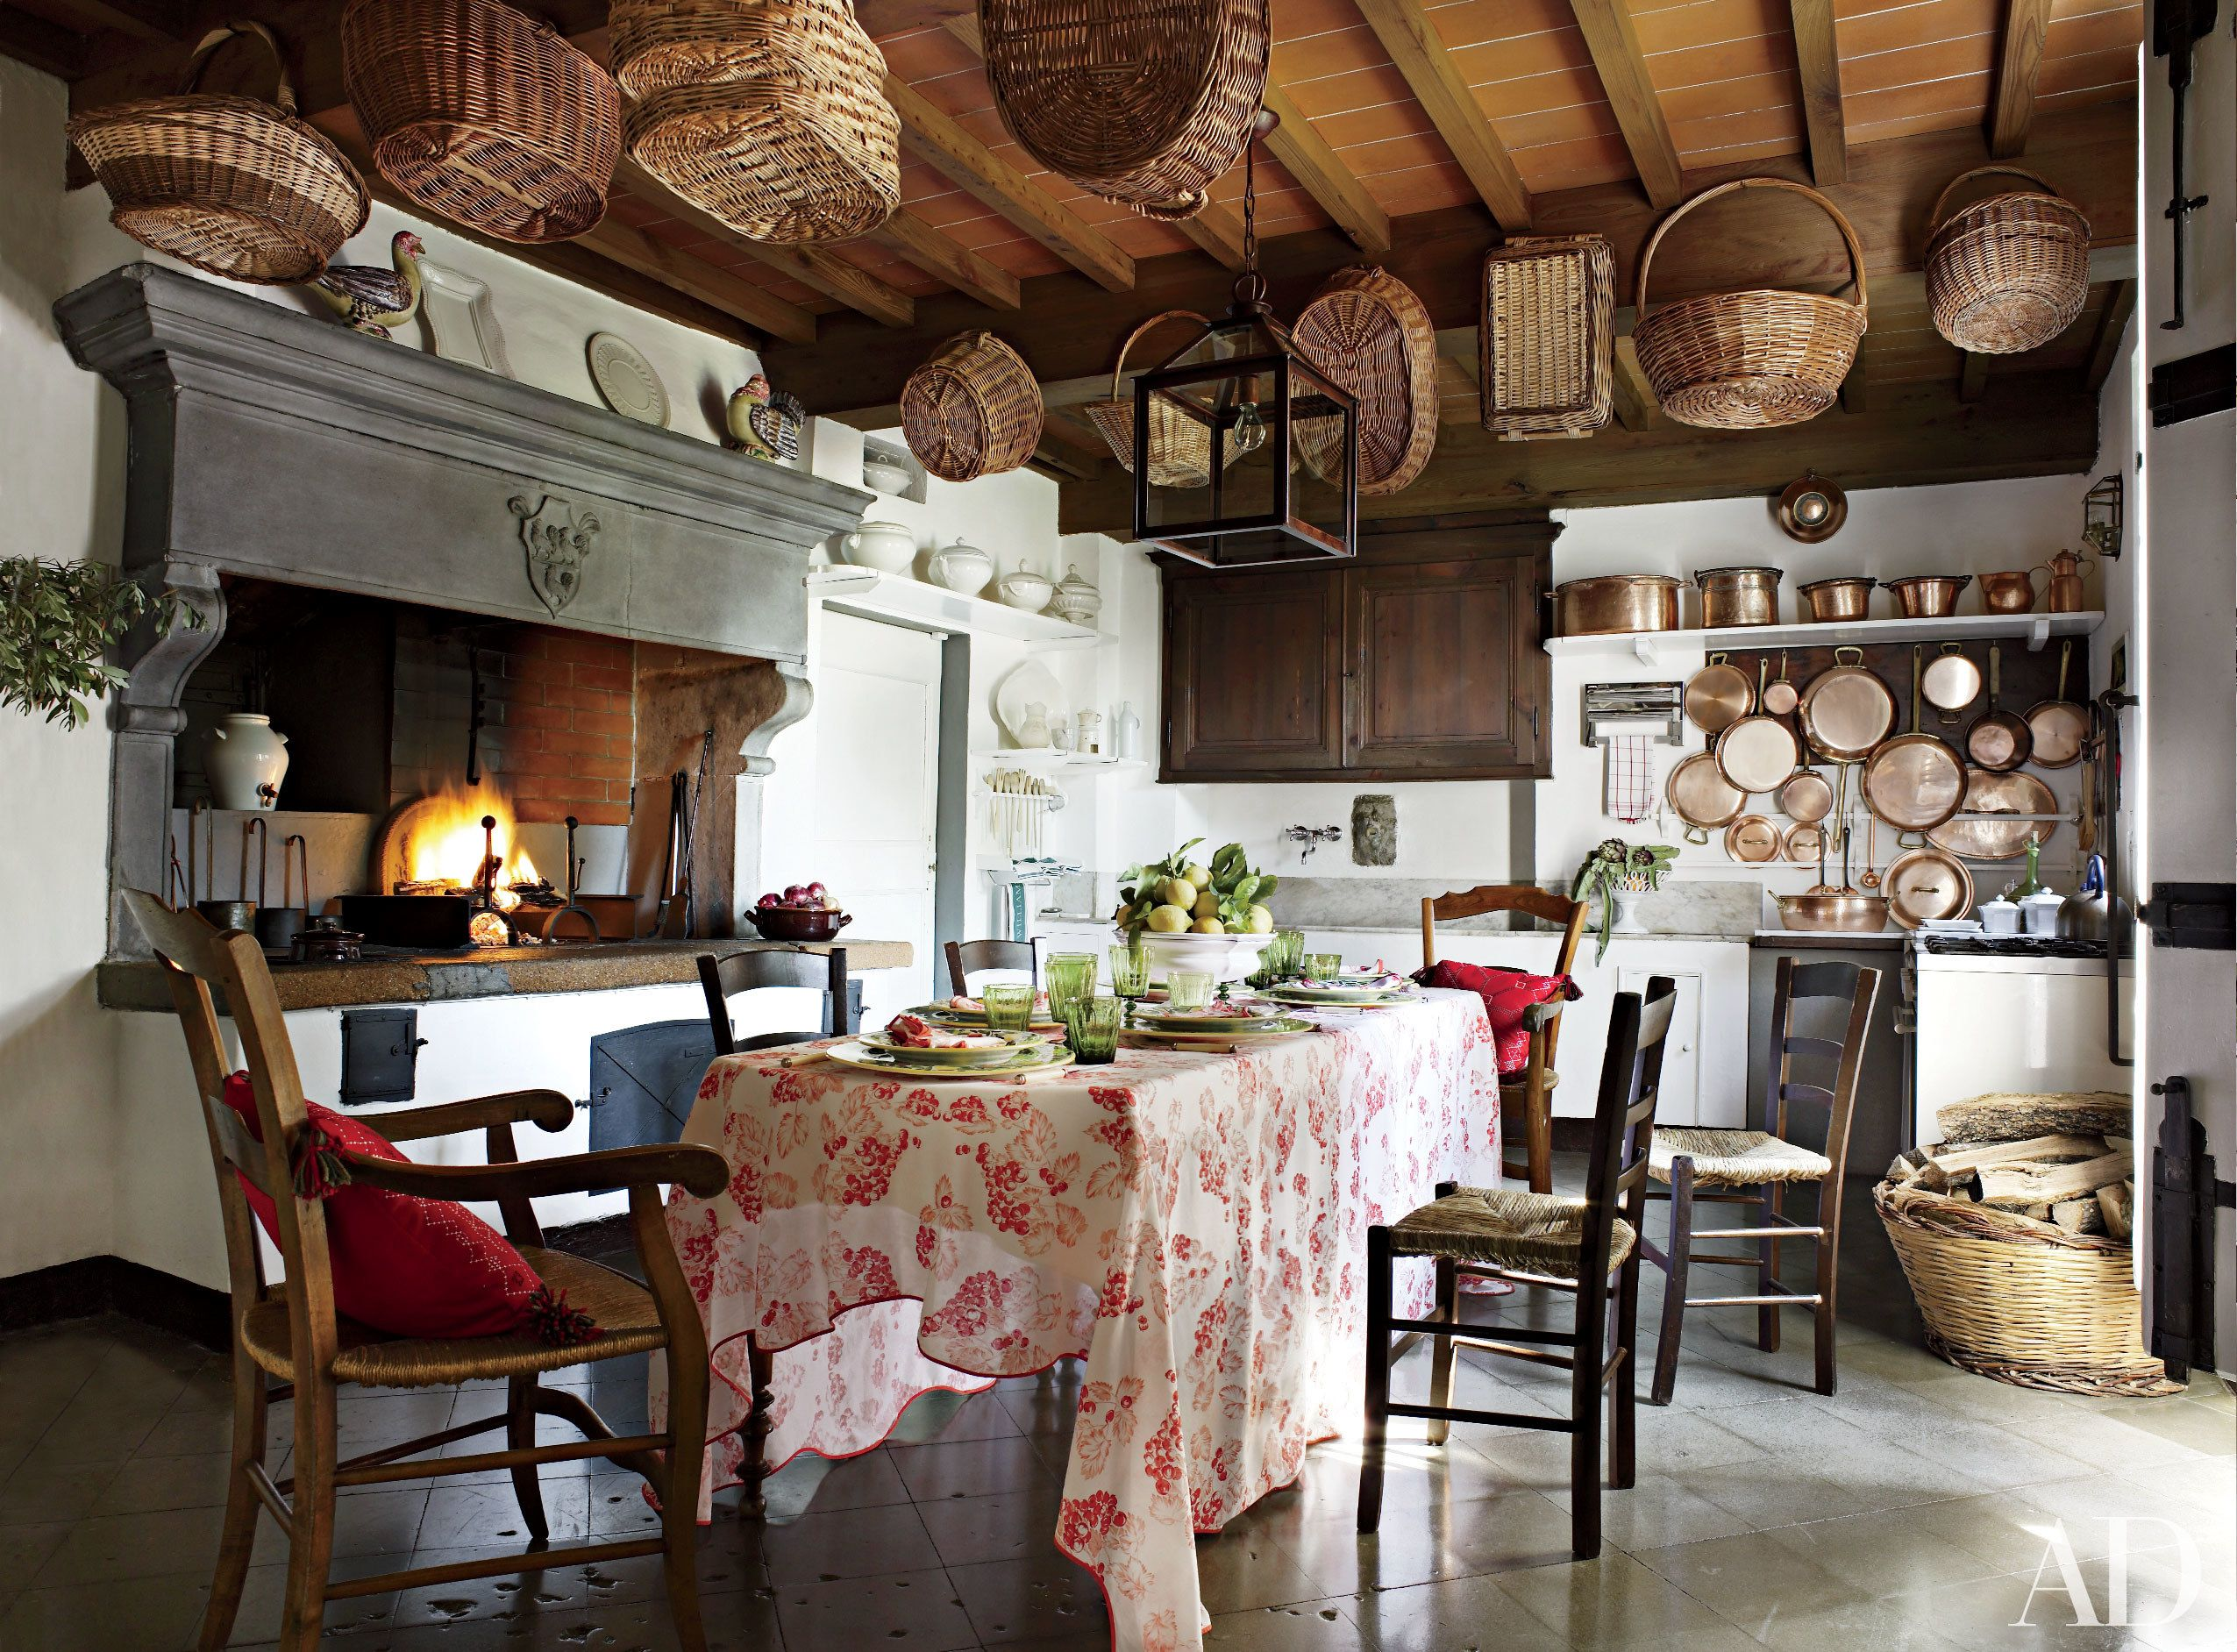 Warm Up Next to These Cozy Kitchen Fireplaces   Architectural digest Ideas For Country Kitchens With Fire Places on kitchen dinning room ideas, kitchen sitting area ideas, kitchen island sink ideas,